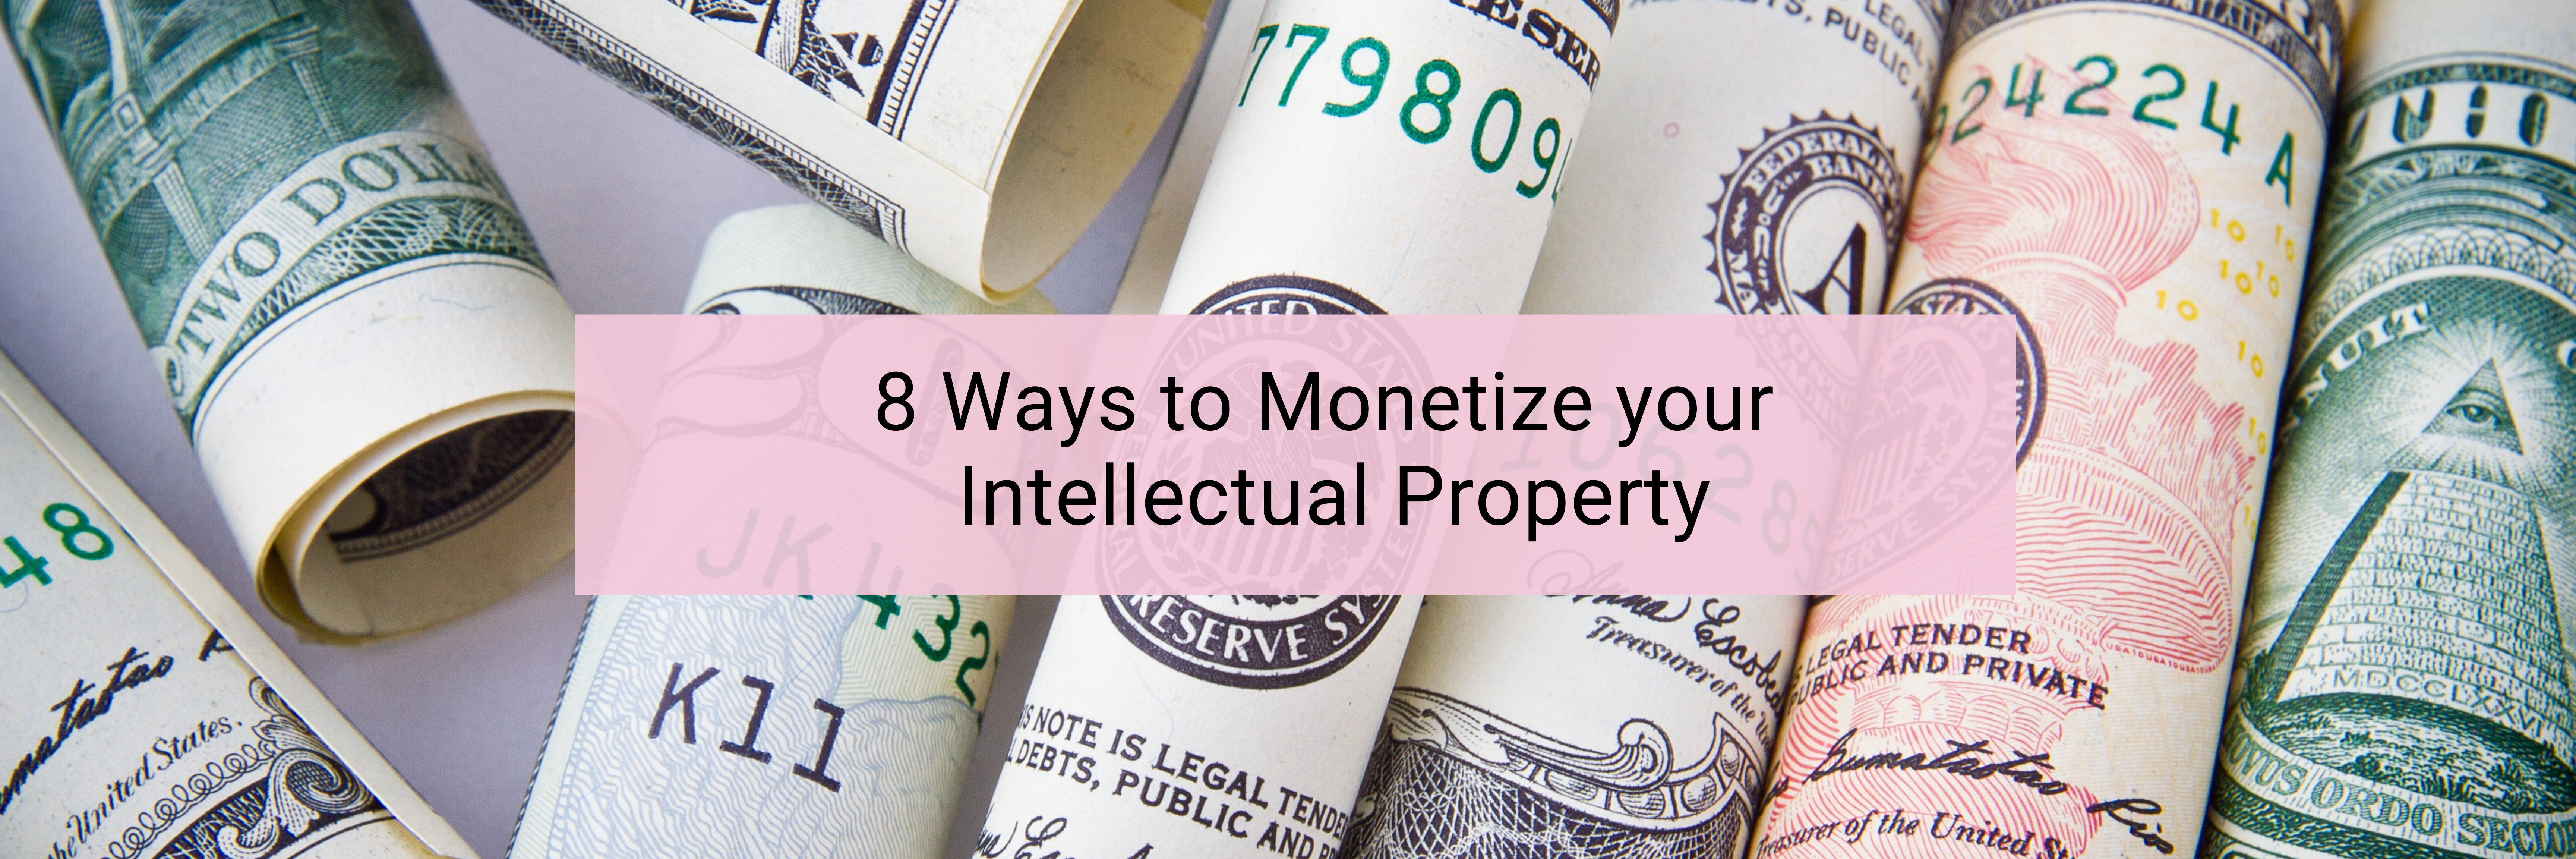 8 Ways to Monetize your Intellectual Property